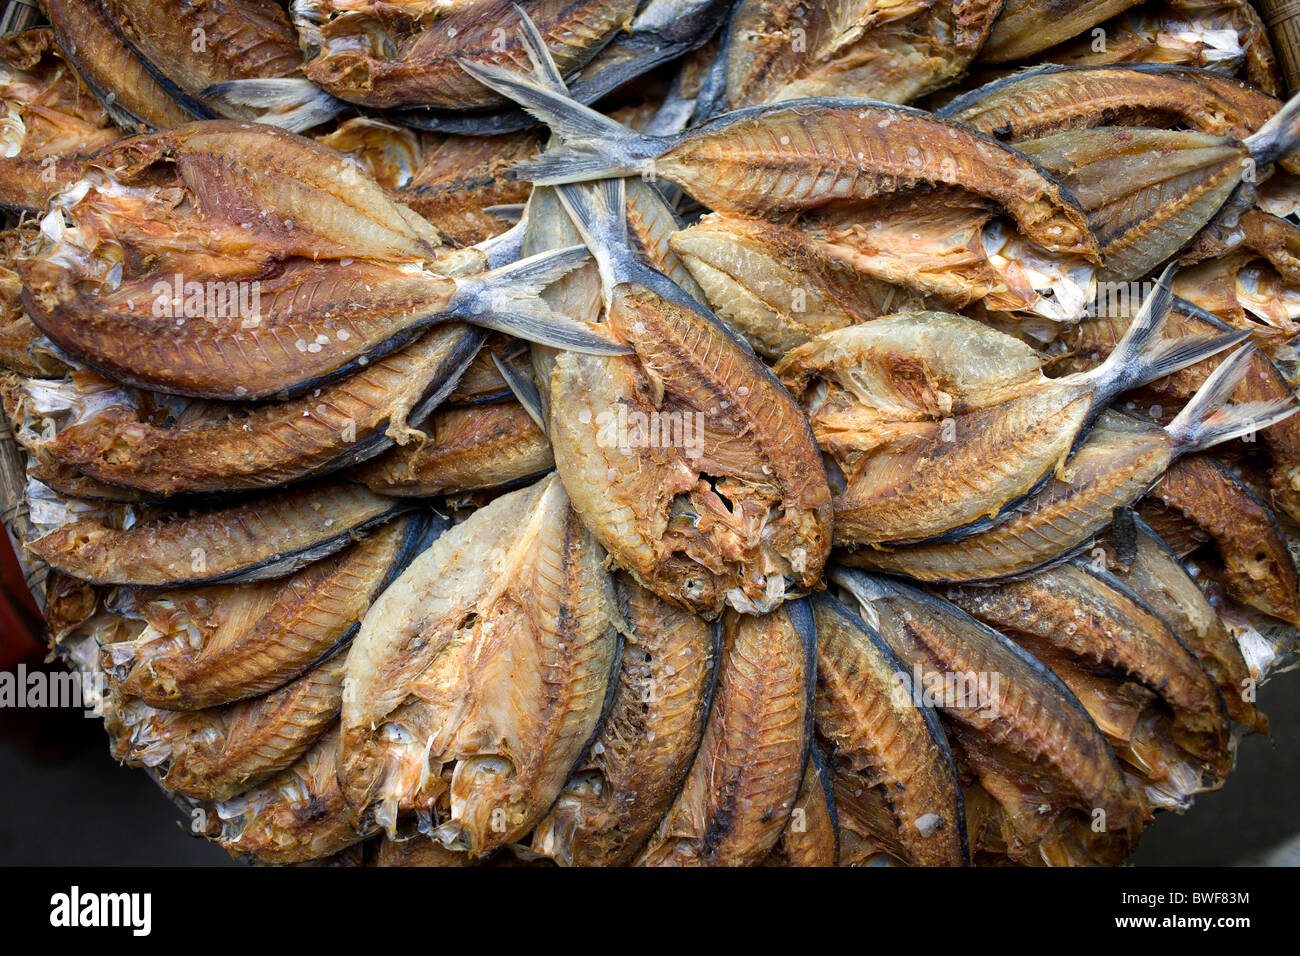 Dried Fish Stock Photos & Dried Fish Stock Images - Alamy